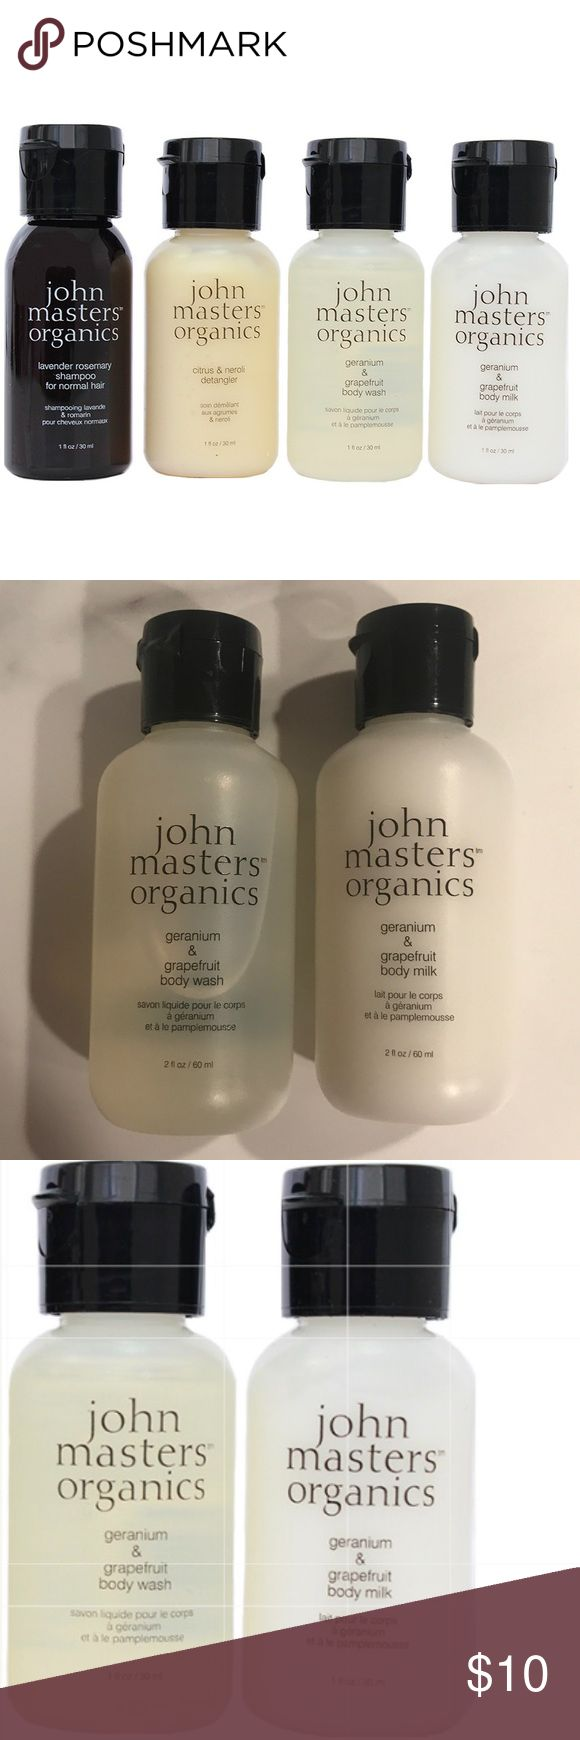 NWT John Masters Organics Geranium/Grapefruit Duo NEW WITH TAGS, NEVER USED John Masters Organics Geranium & Grapefruit Body Milk & Body Wash  BODY MILK IS A LIGHT LOTION, WHILE THE BODY WASH IS A GENTLE, NON-DRYING CLEANSER  Lightweight Body Milk formula absorbs quickly & provides moisture & softness. Body Wash lathers into a rich, creamy foam gently washing away dirt & oil without drying out skin. Both have essential oils of geranium, grapefruit & lavender which nourish & leave you with a…